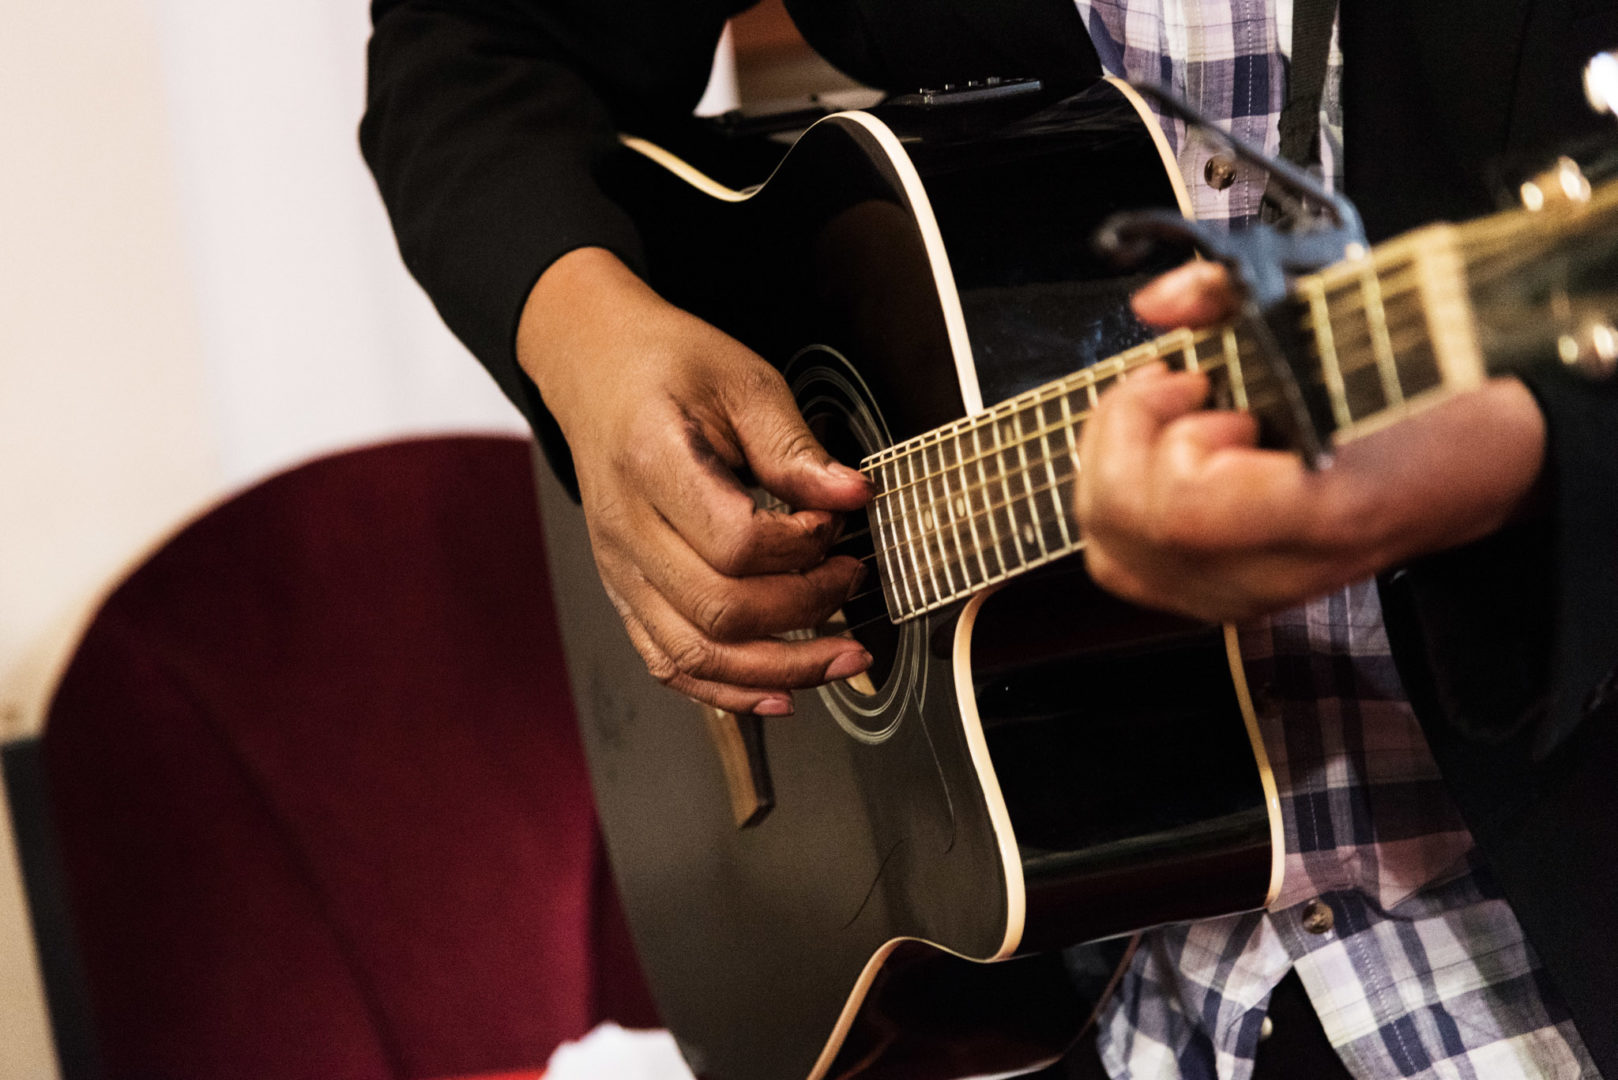 A musician oplays a guitar at St Mary's Church in Coventry